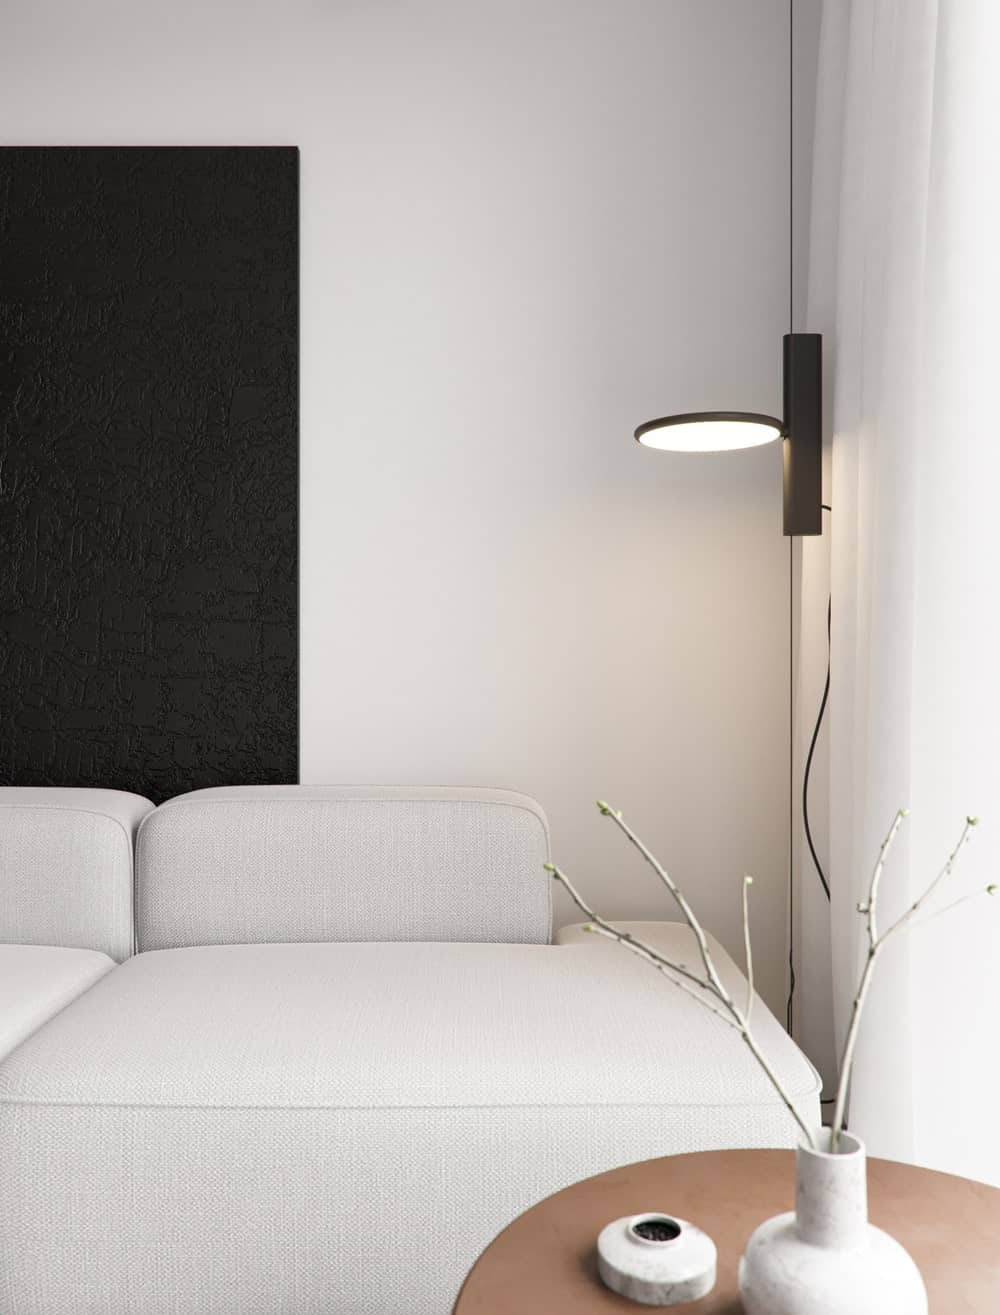 This is the other side of the sectional sofa that has a wall-mounted lamp and a small wooden coffee table.